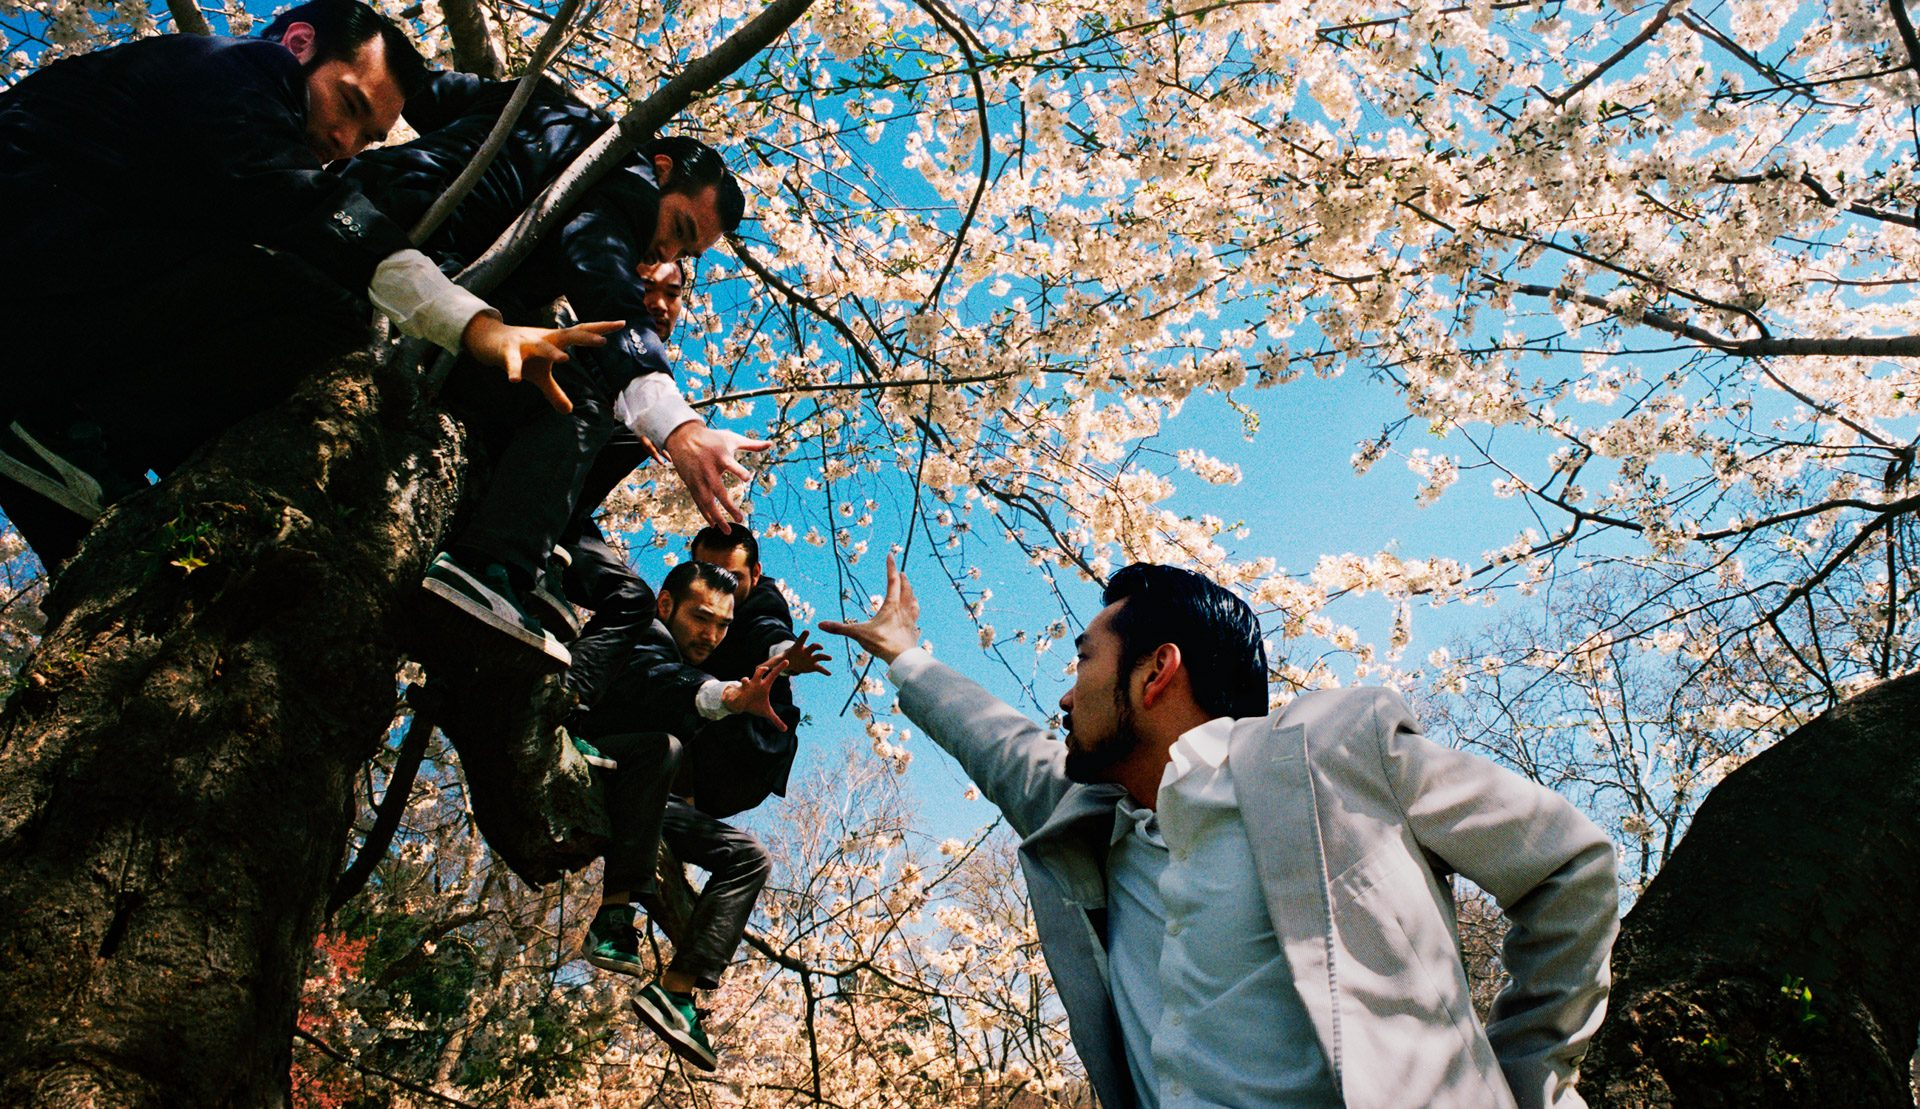 A group of asians in dark suits sitting in a tree, reaching for the same asian in a white suit on the ground.